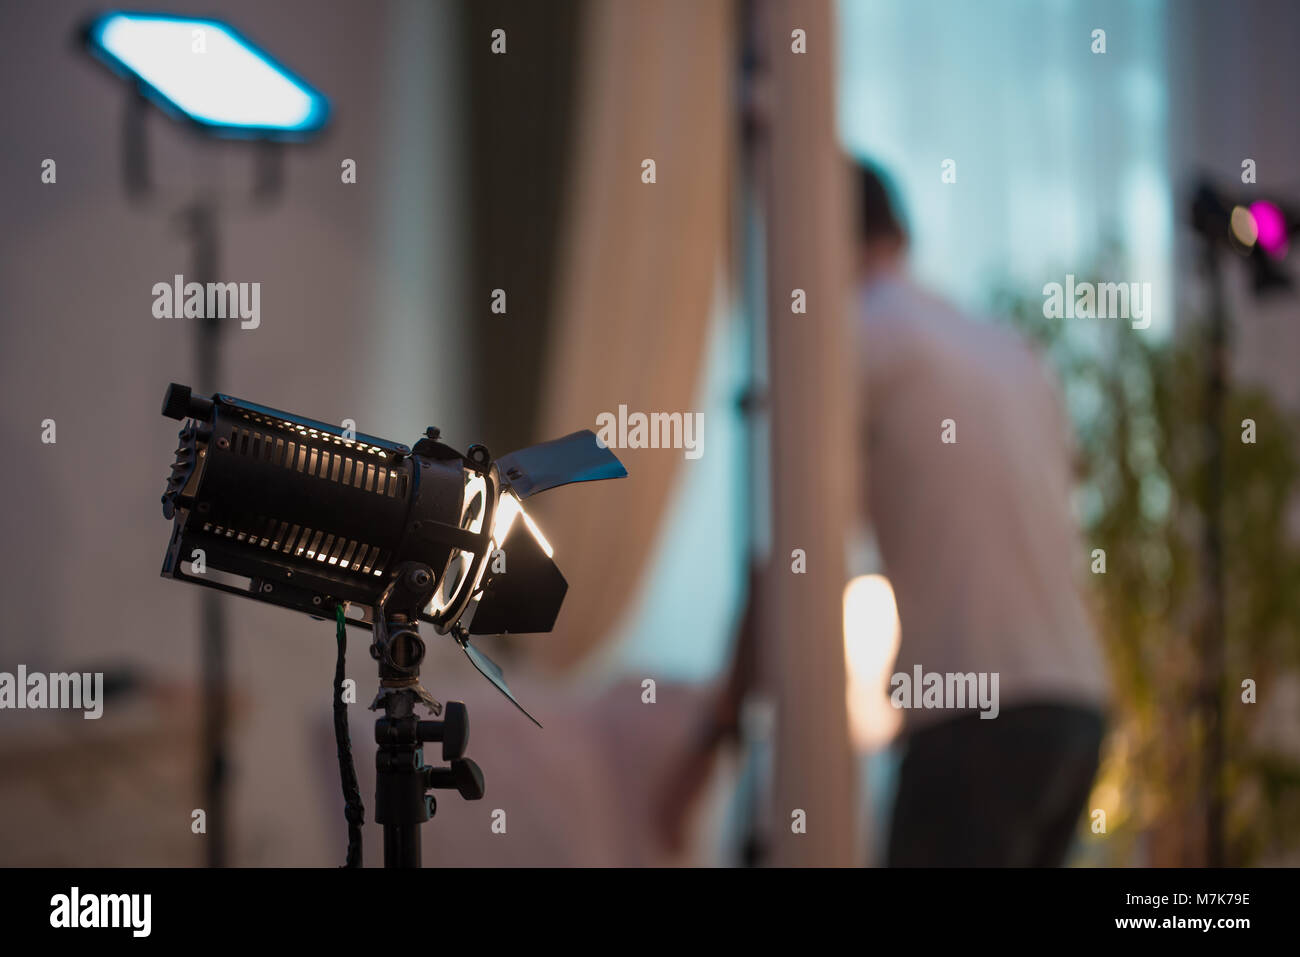 Professional cinema lamps with continuous light standing in the dark room. - Stock Image